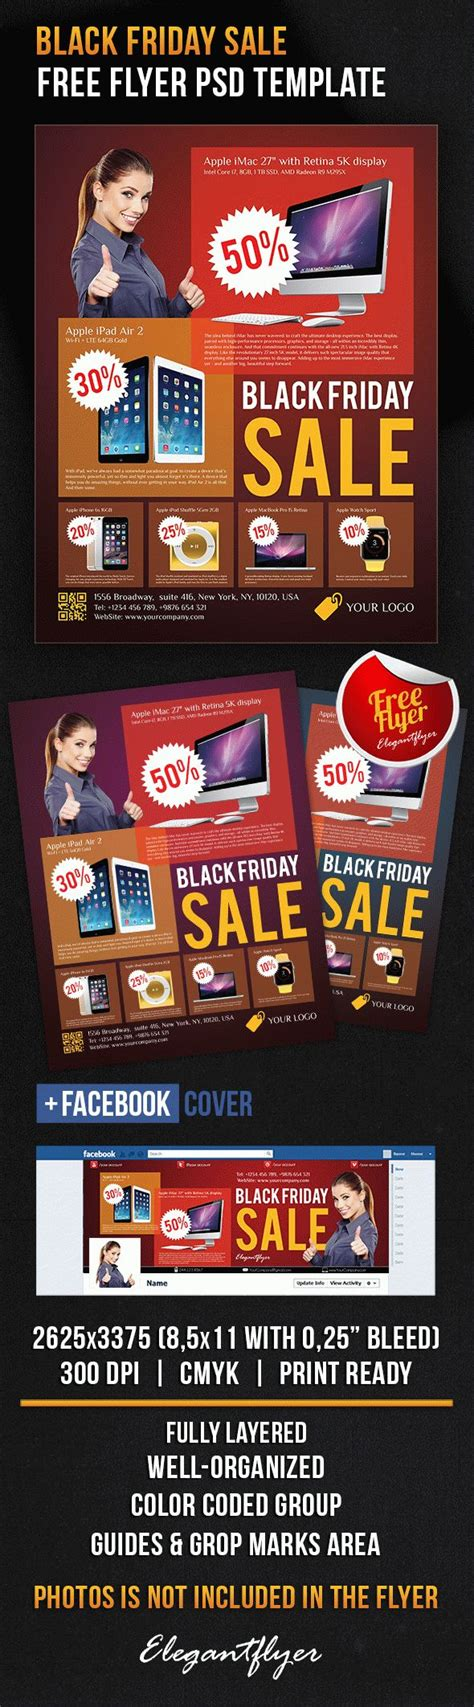 photoshop templates for sale black friday sale free flyer psd template by elegantflyer